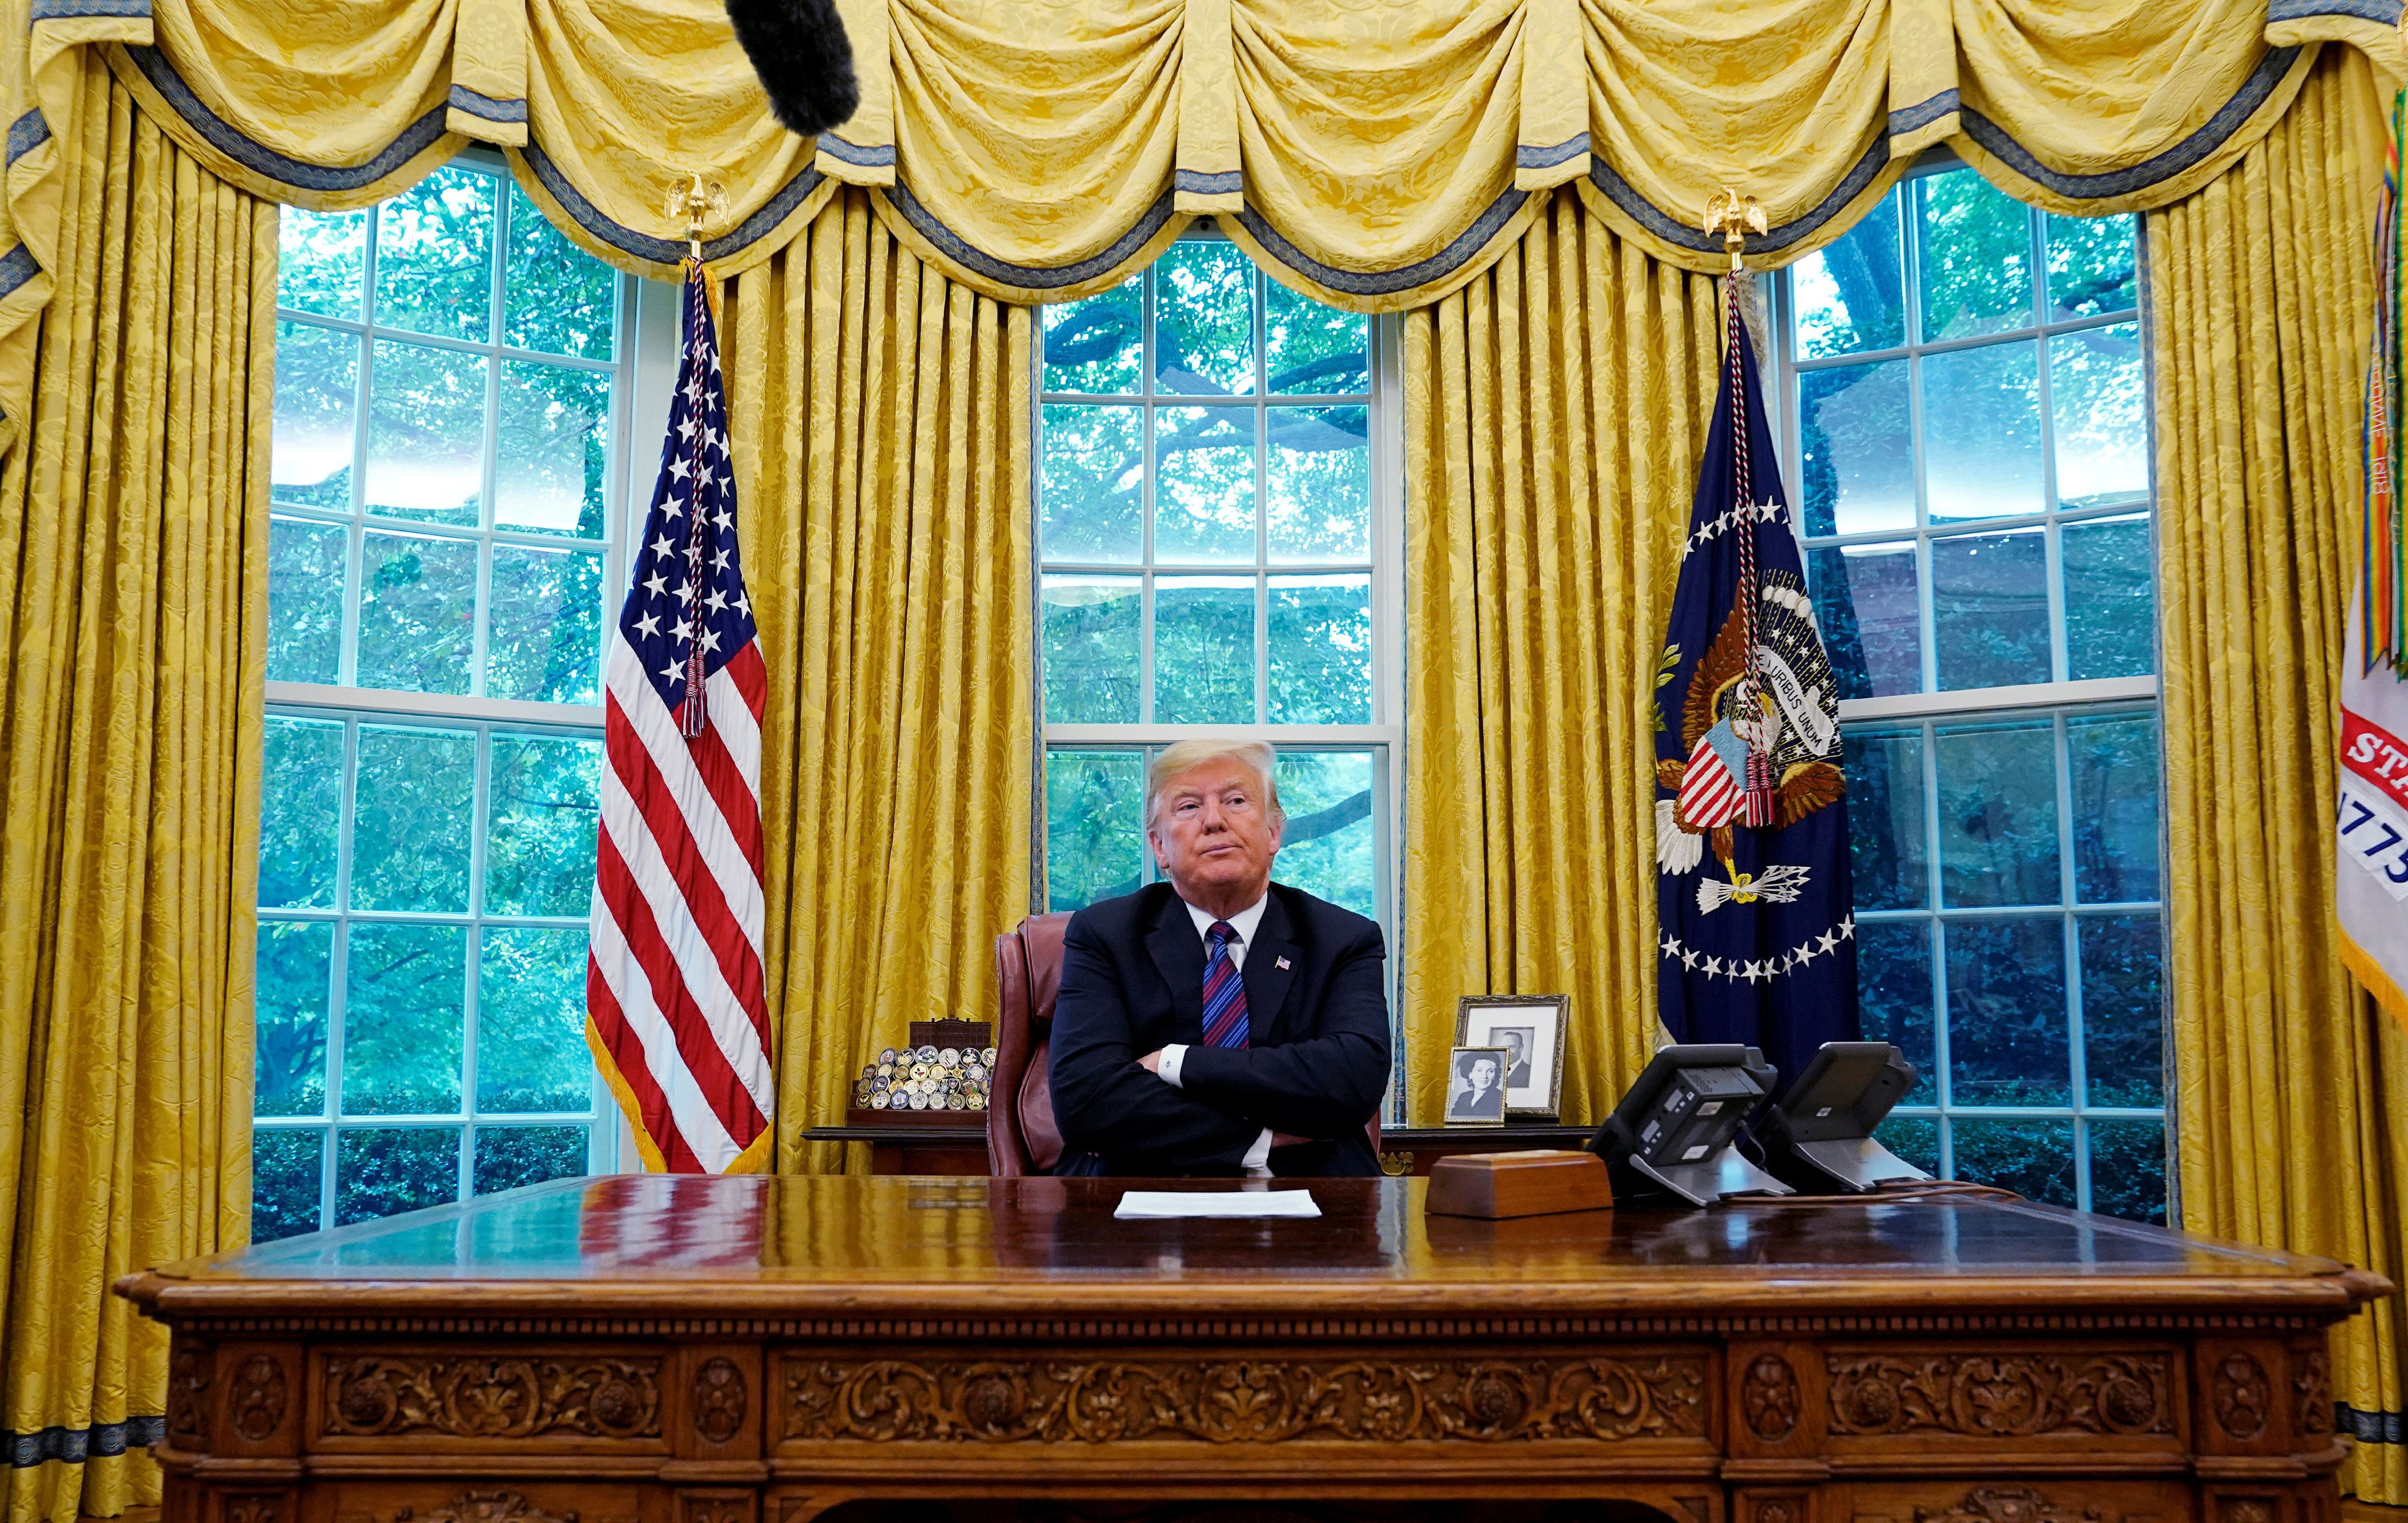 U.S. President Donald Trump sits behind the Resolute desk as he makes an announcemment on the status of the North American Free Trade Agreement (NAFTA) from the Oval Office of the White House in Washington, U.S., August 27, 2018. REUTERS/Kevin Lamarque